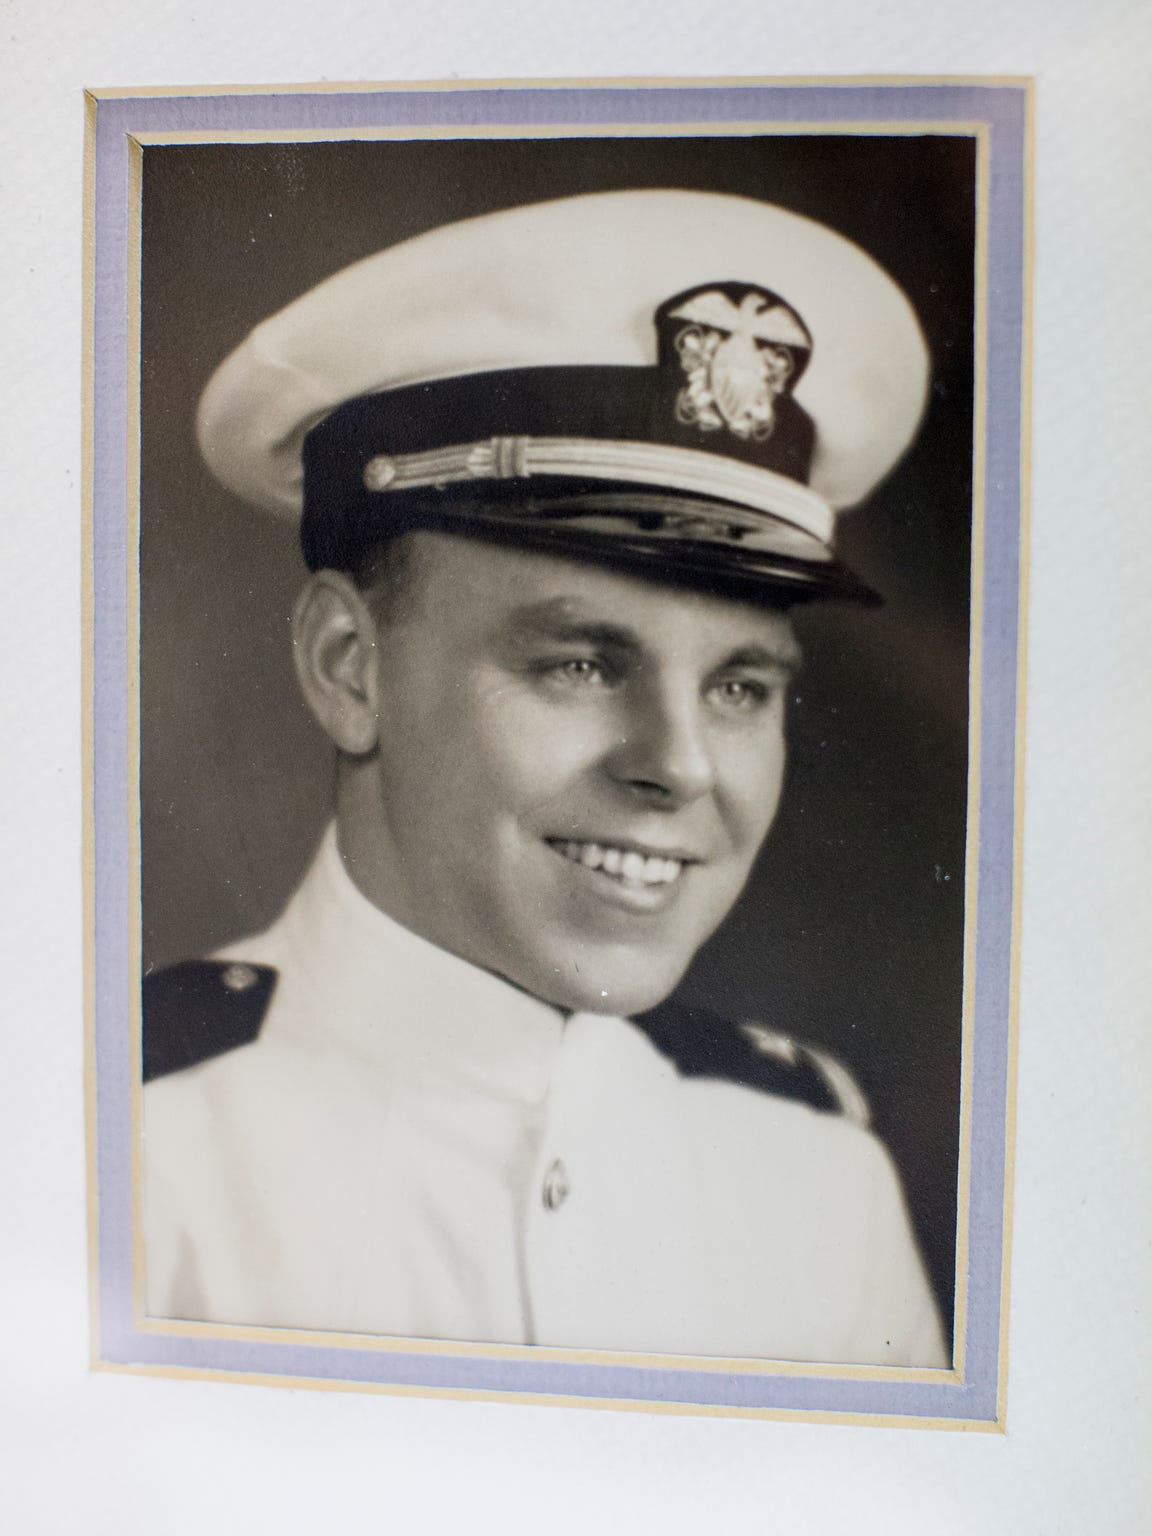 When the Pearl Harbor attack began, Joe Langdell was